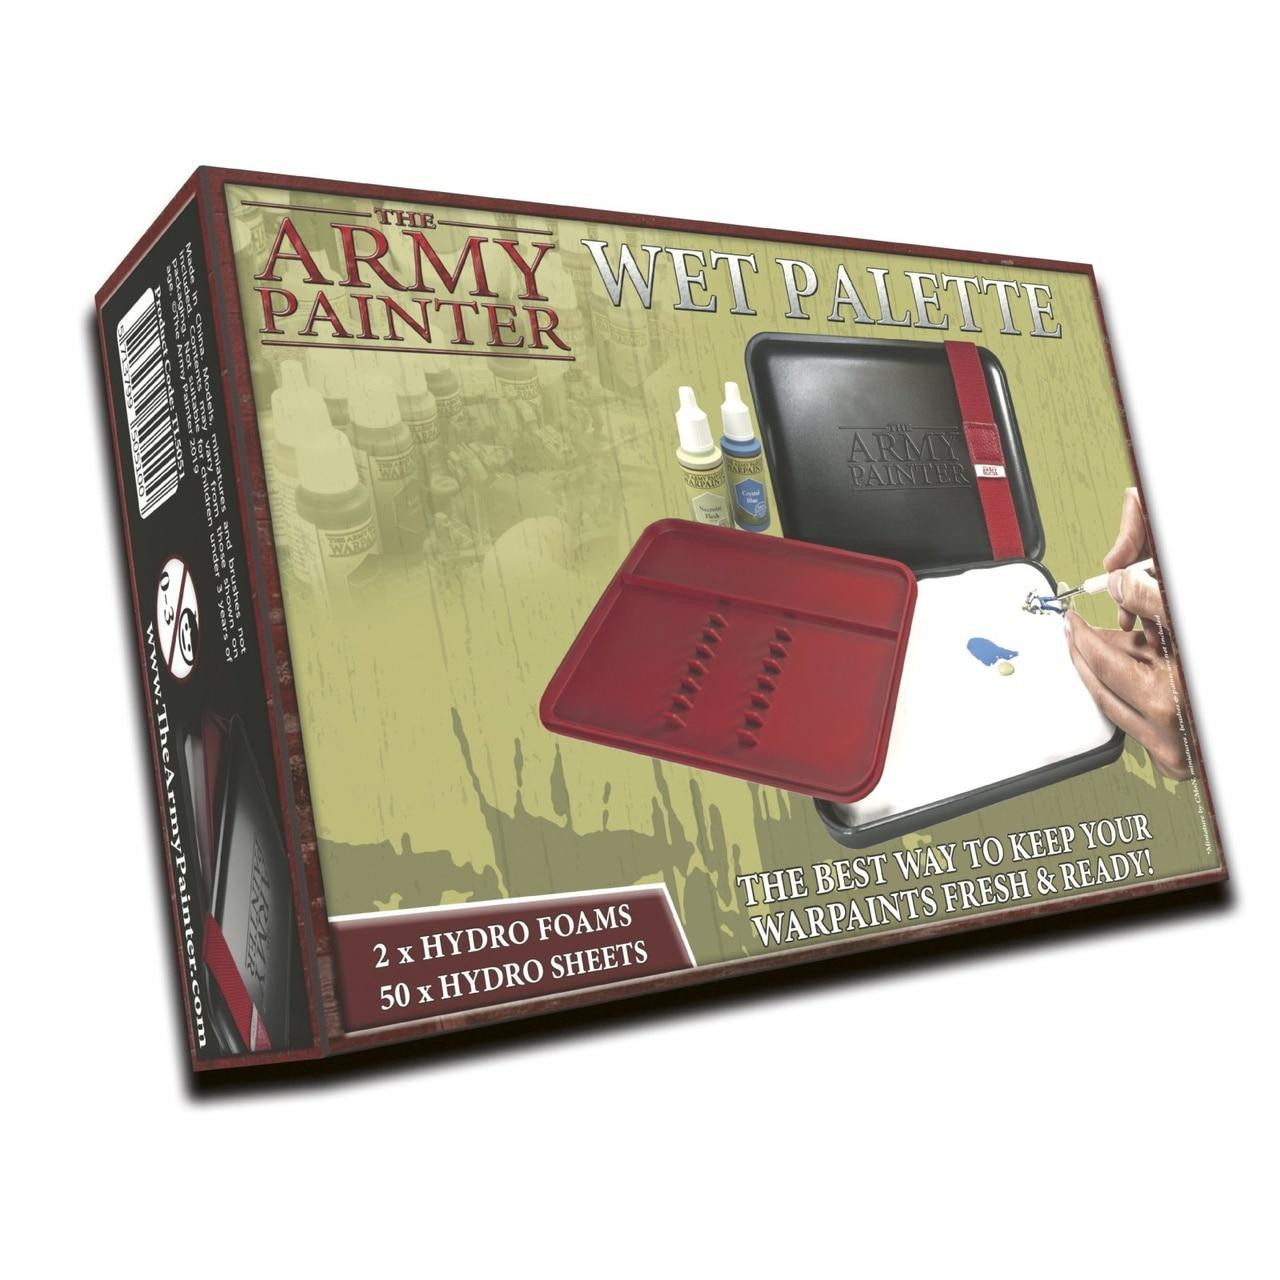 The Army Painter Wet Palette The Army Painter